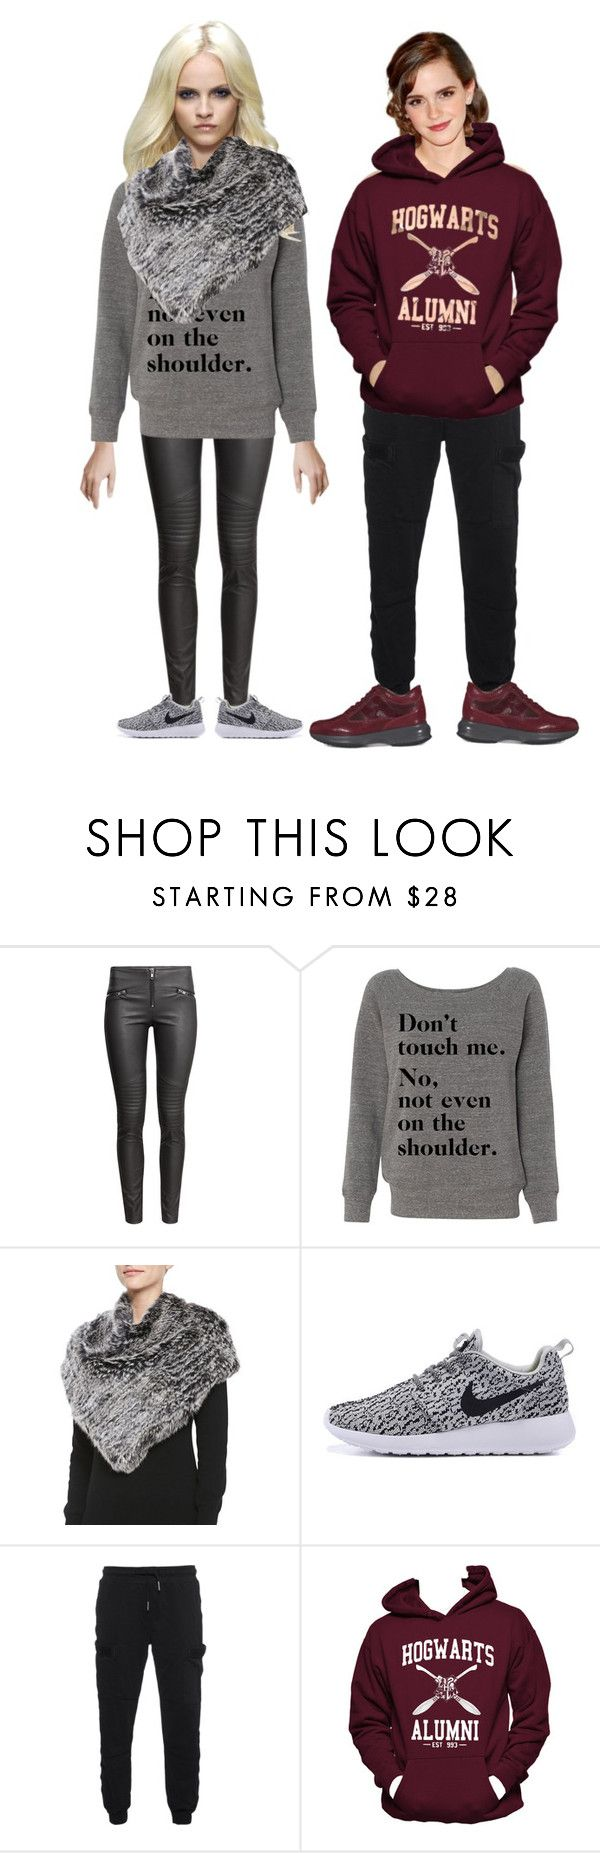 """""""Satinee girls in winter clothes!"""" by smileyamz ❤ liked on Polyvore featuring H&M, Jocelyn, Emma Watson, True Religion, Hanes and Hogan"""